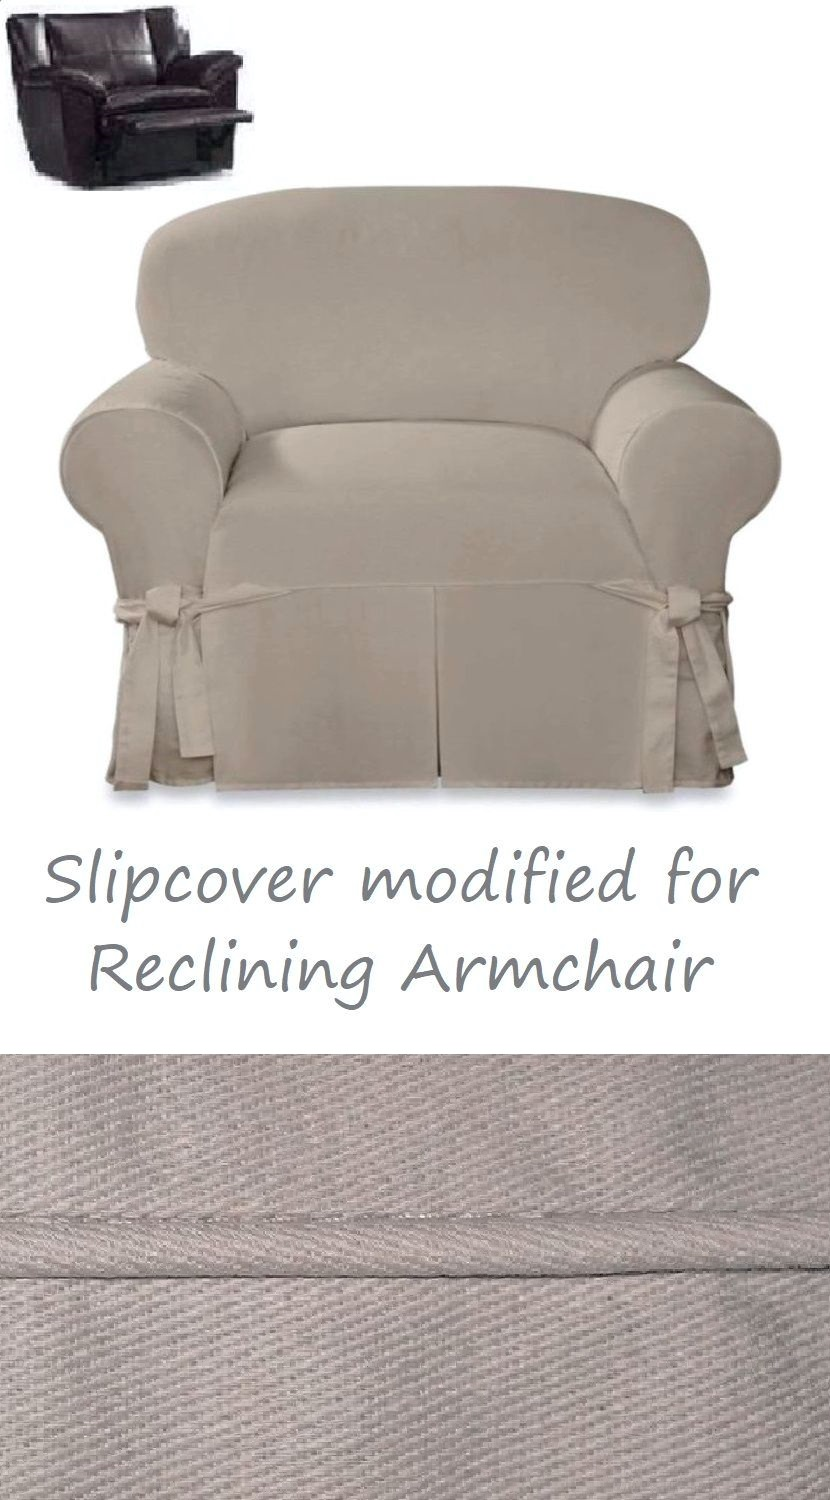 Super Reclining Chair Slipcover Farmhouse Twill Taupe Surefit Armchair Cover Ibusinesslaw Wood Chair Design Ideas Ibusinesslaworg